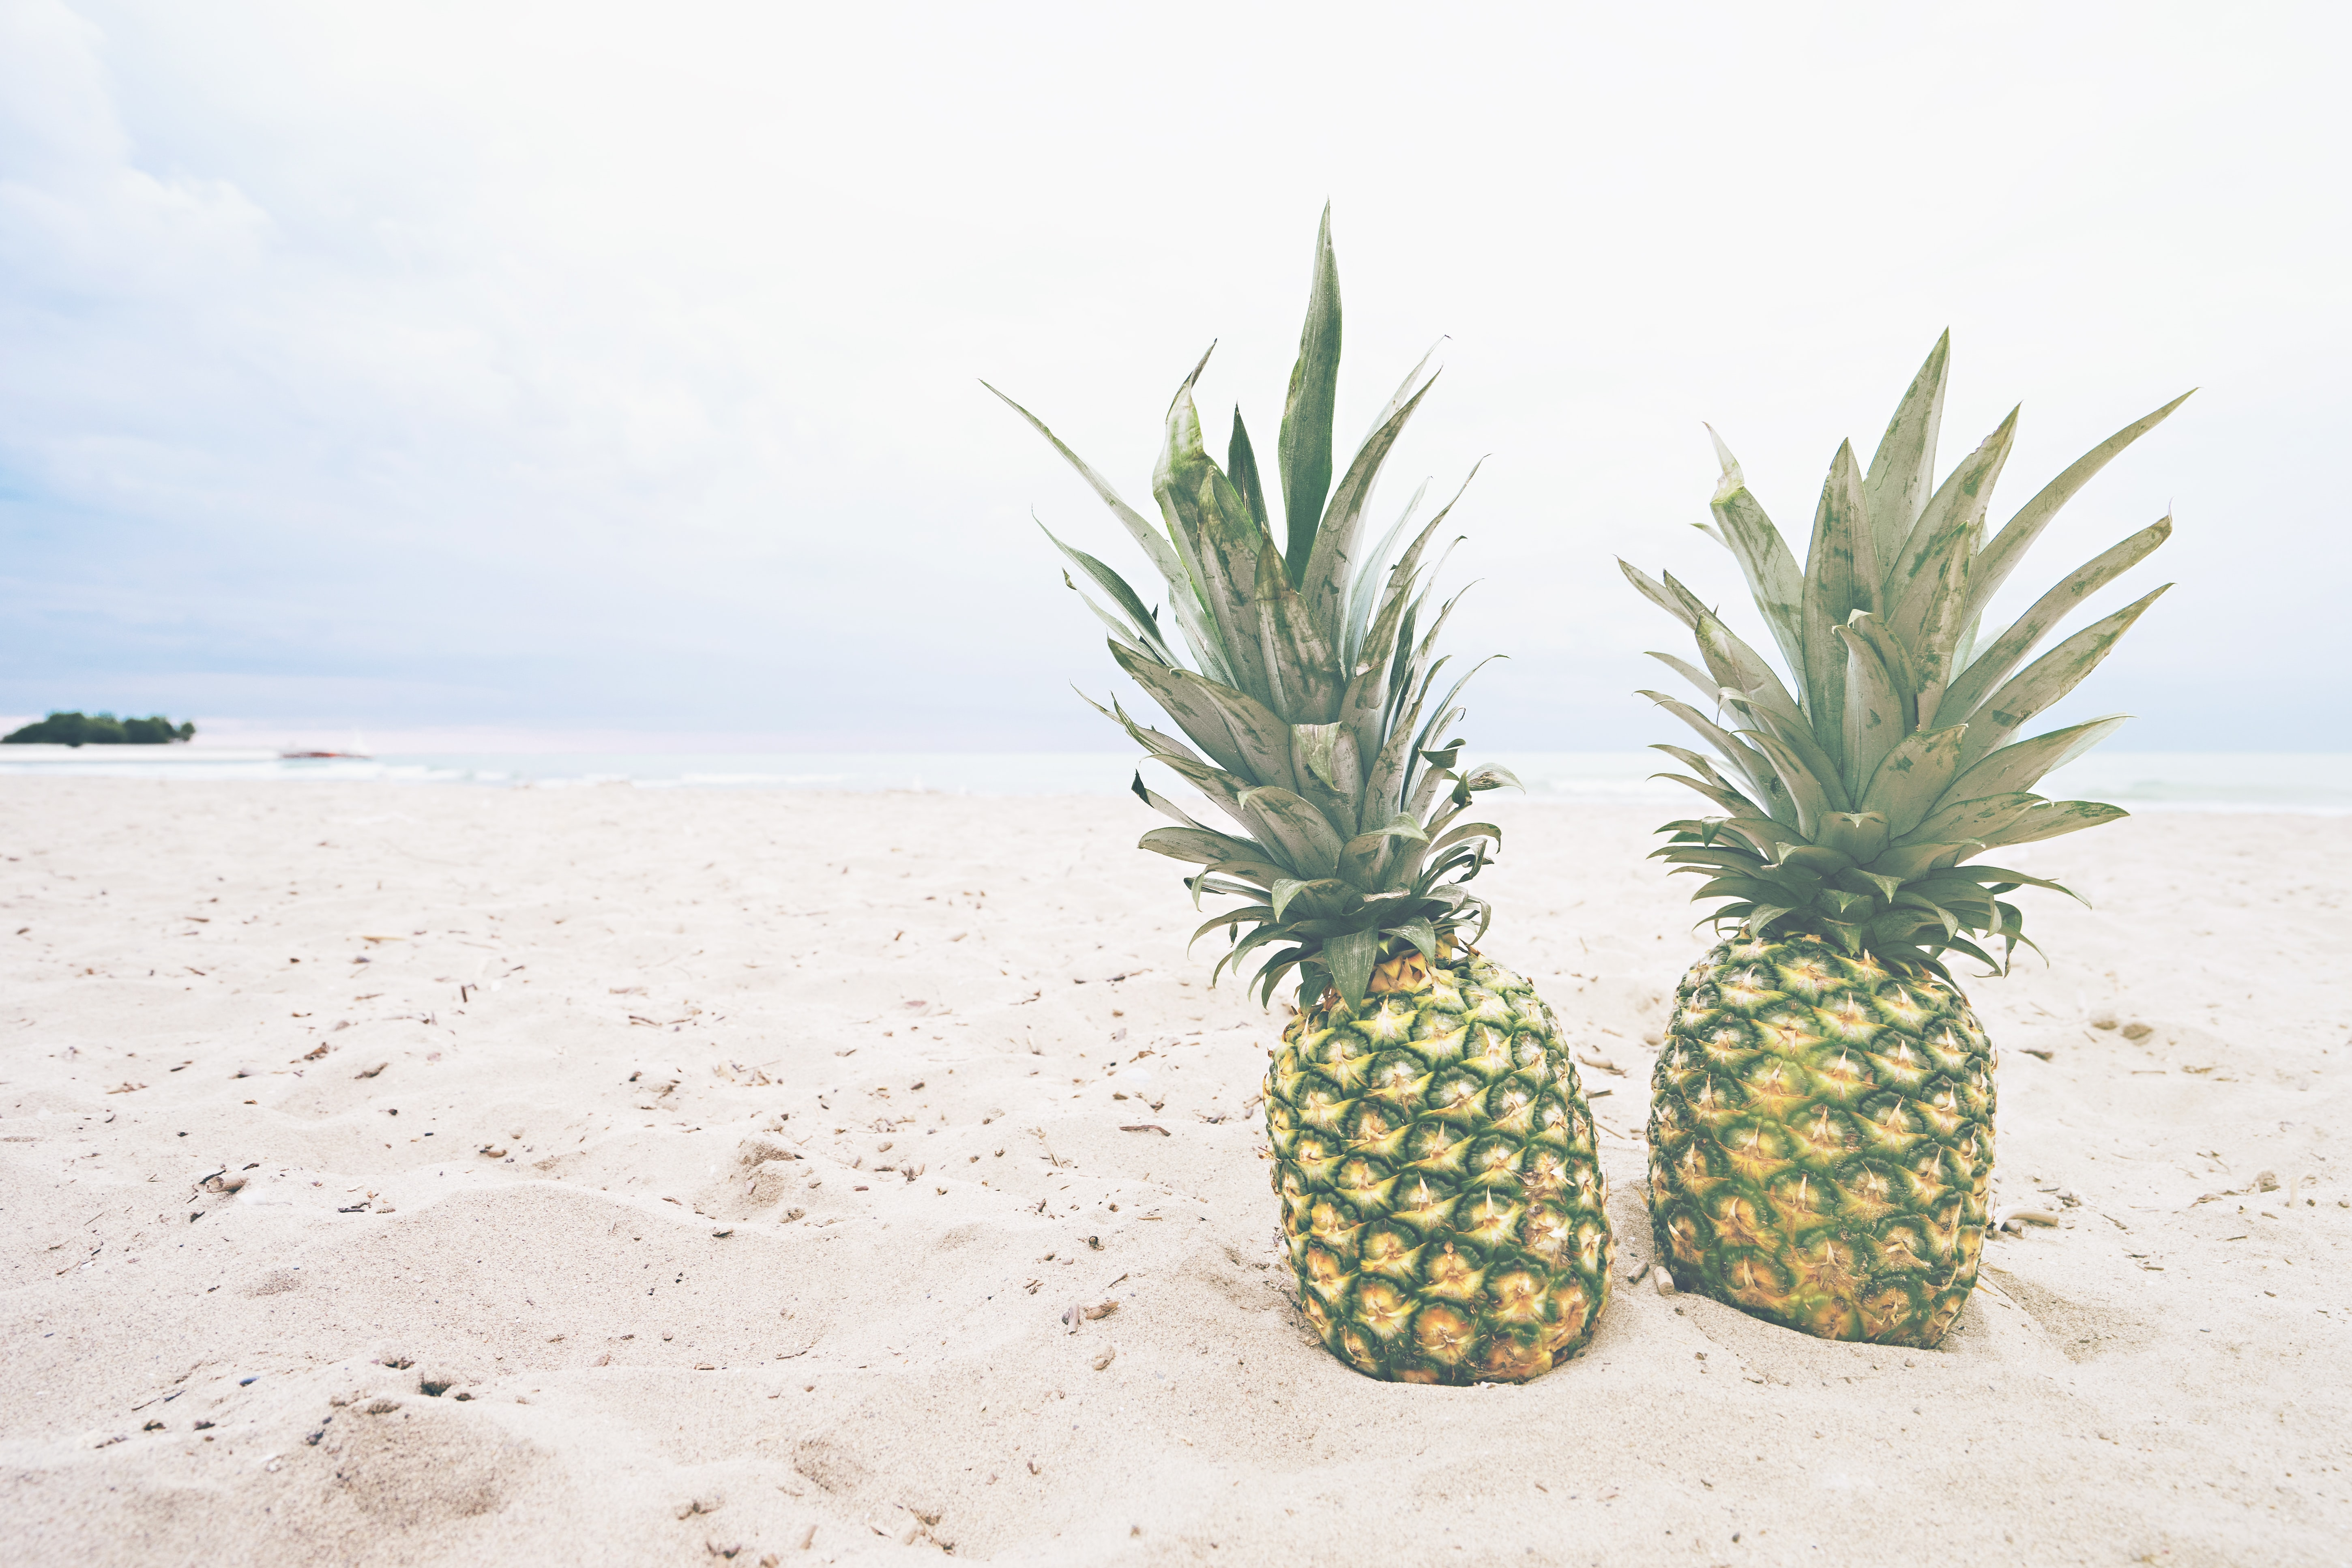 A couple of pineapples side by side on the beach.